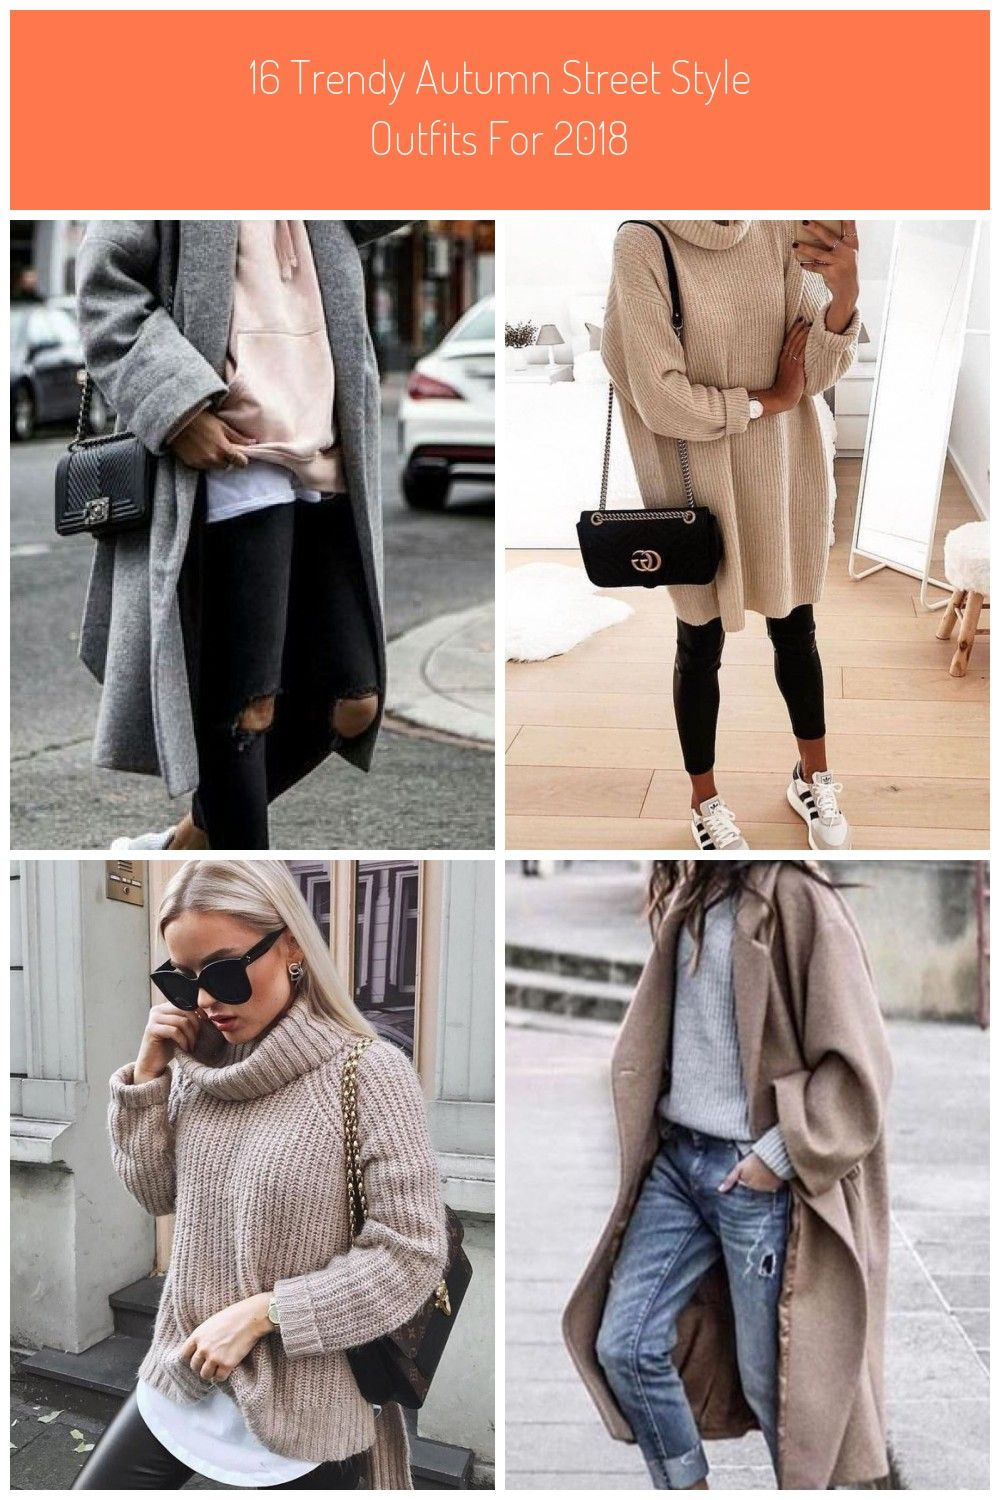 19 Trendy Autumn Street Style Outfits For 19 in 19  Outfit